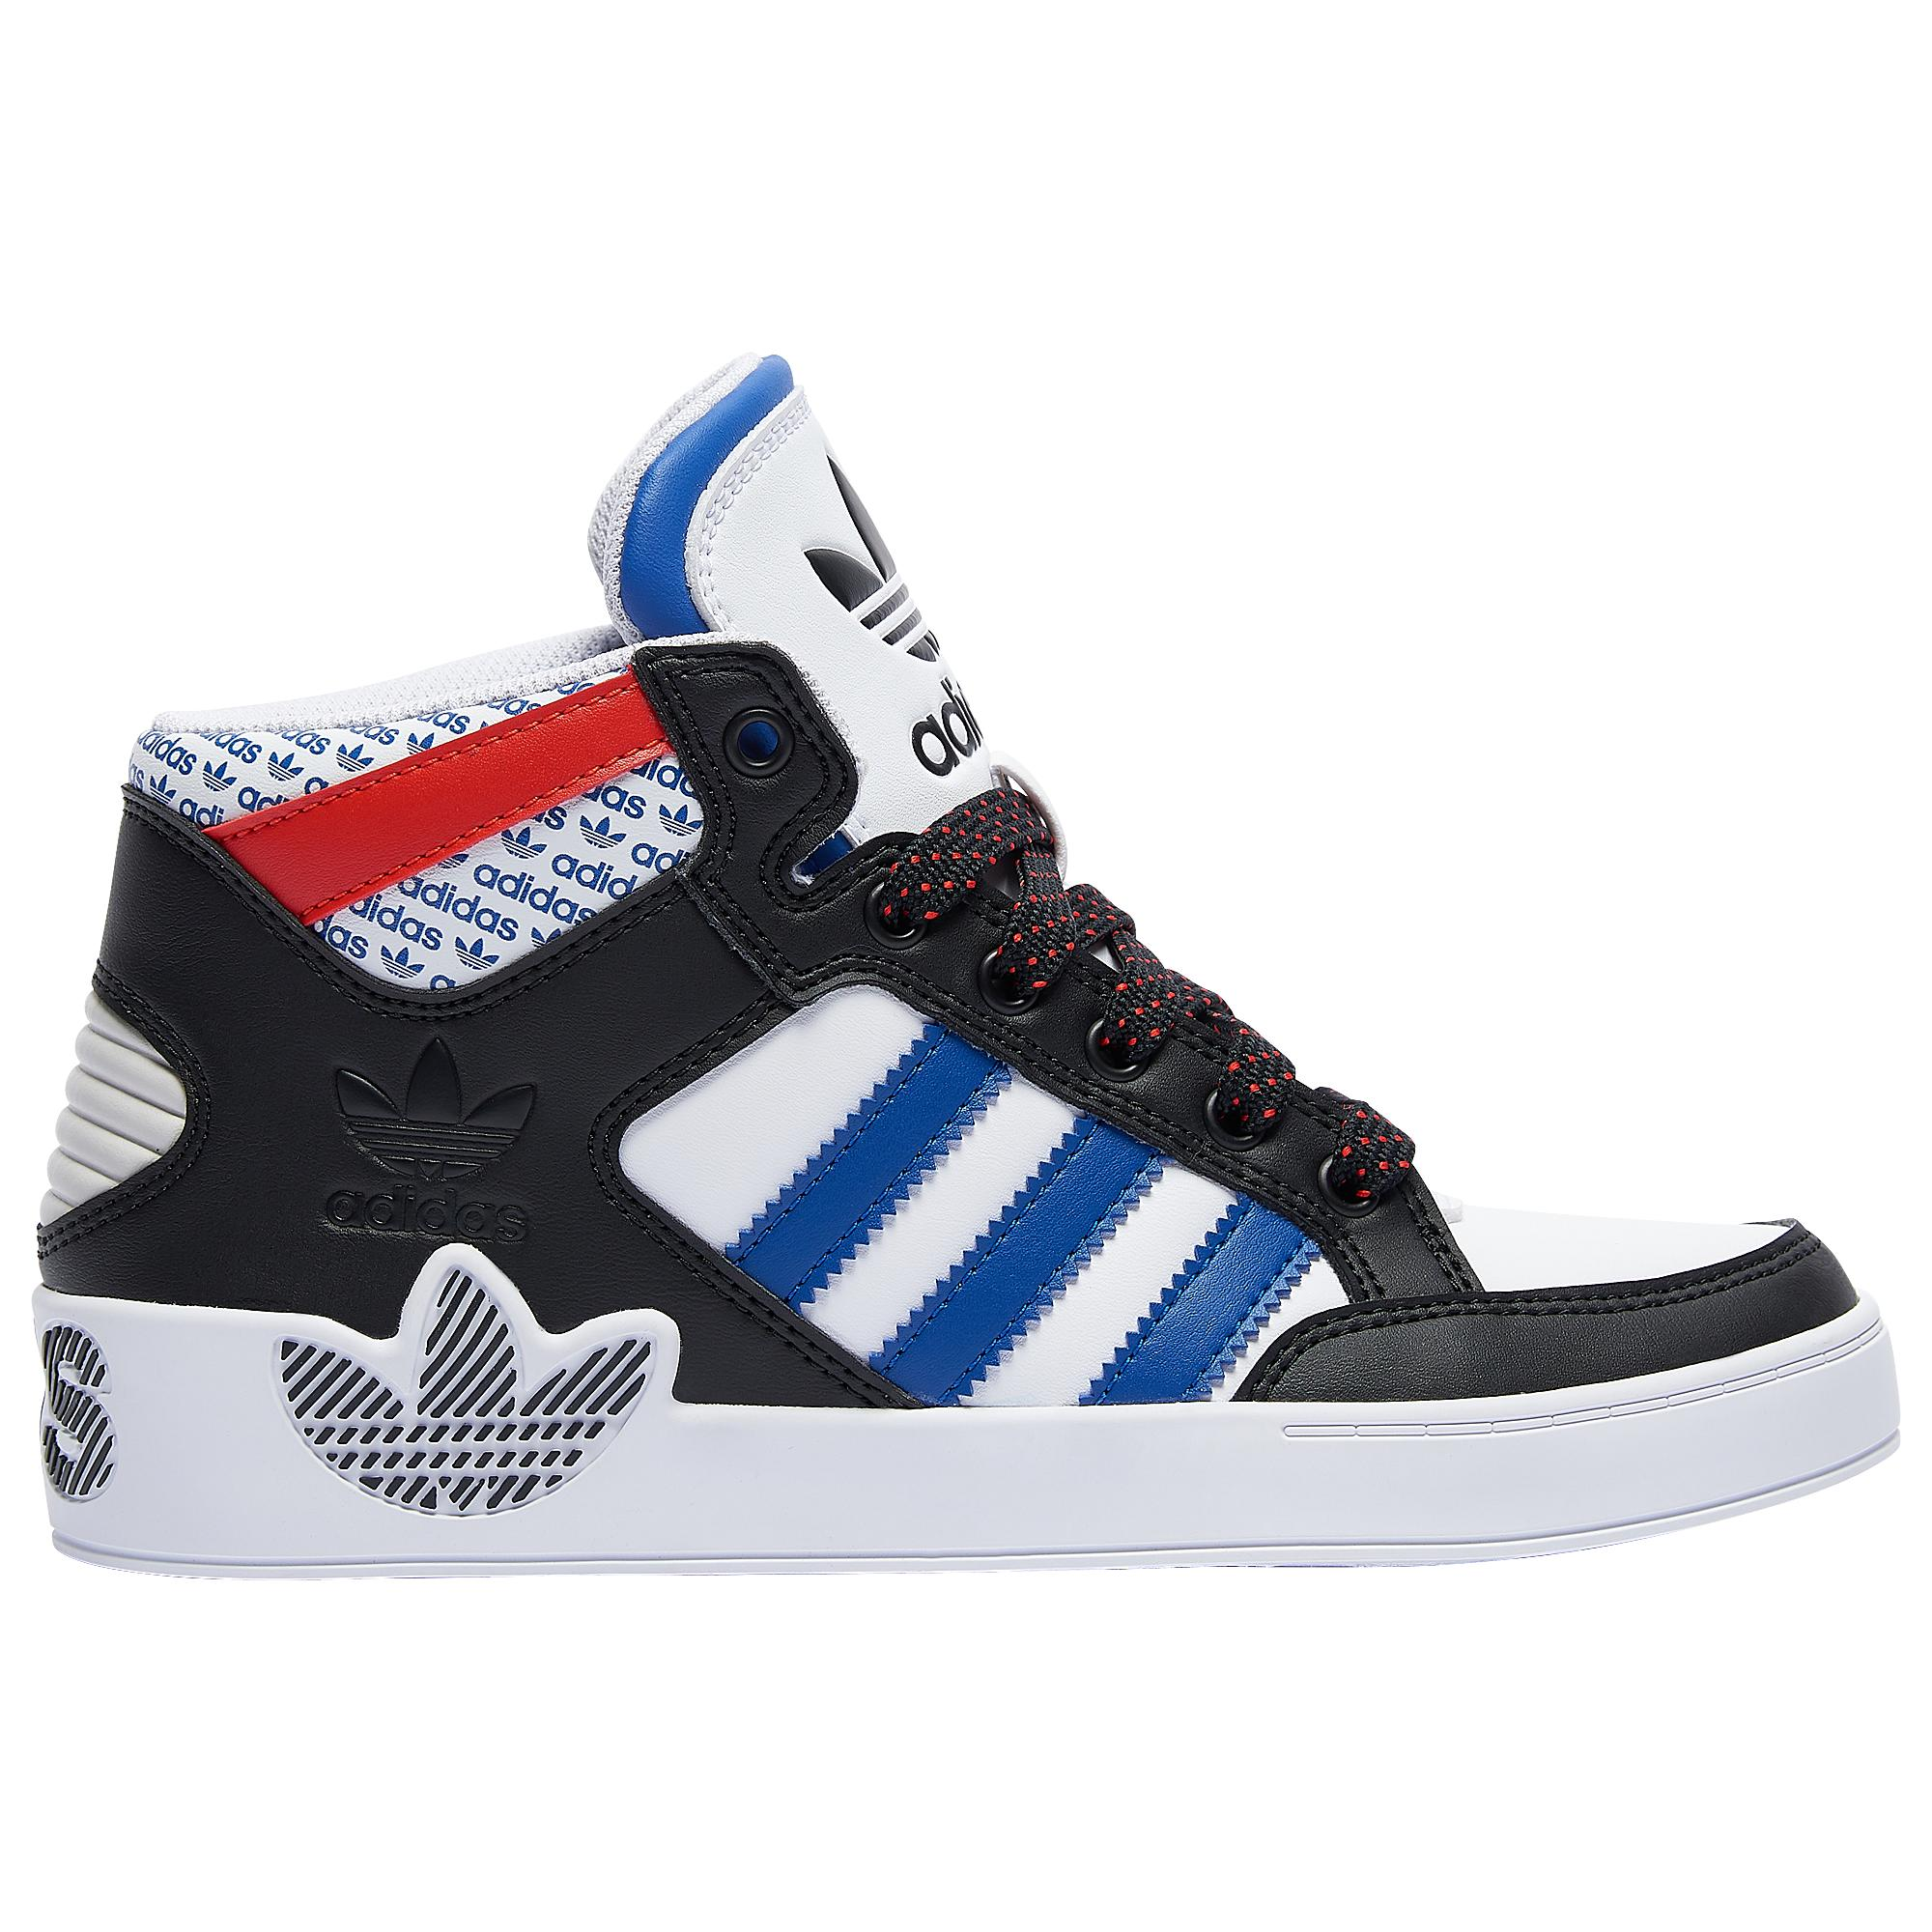 affär stor rabatt stor rea adidas Originals Rubber Hardcourt Hi Tennis Shoes in Black/White ...